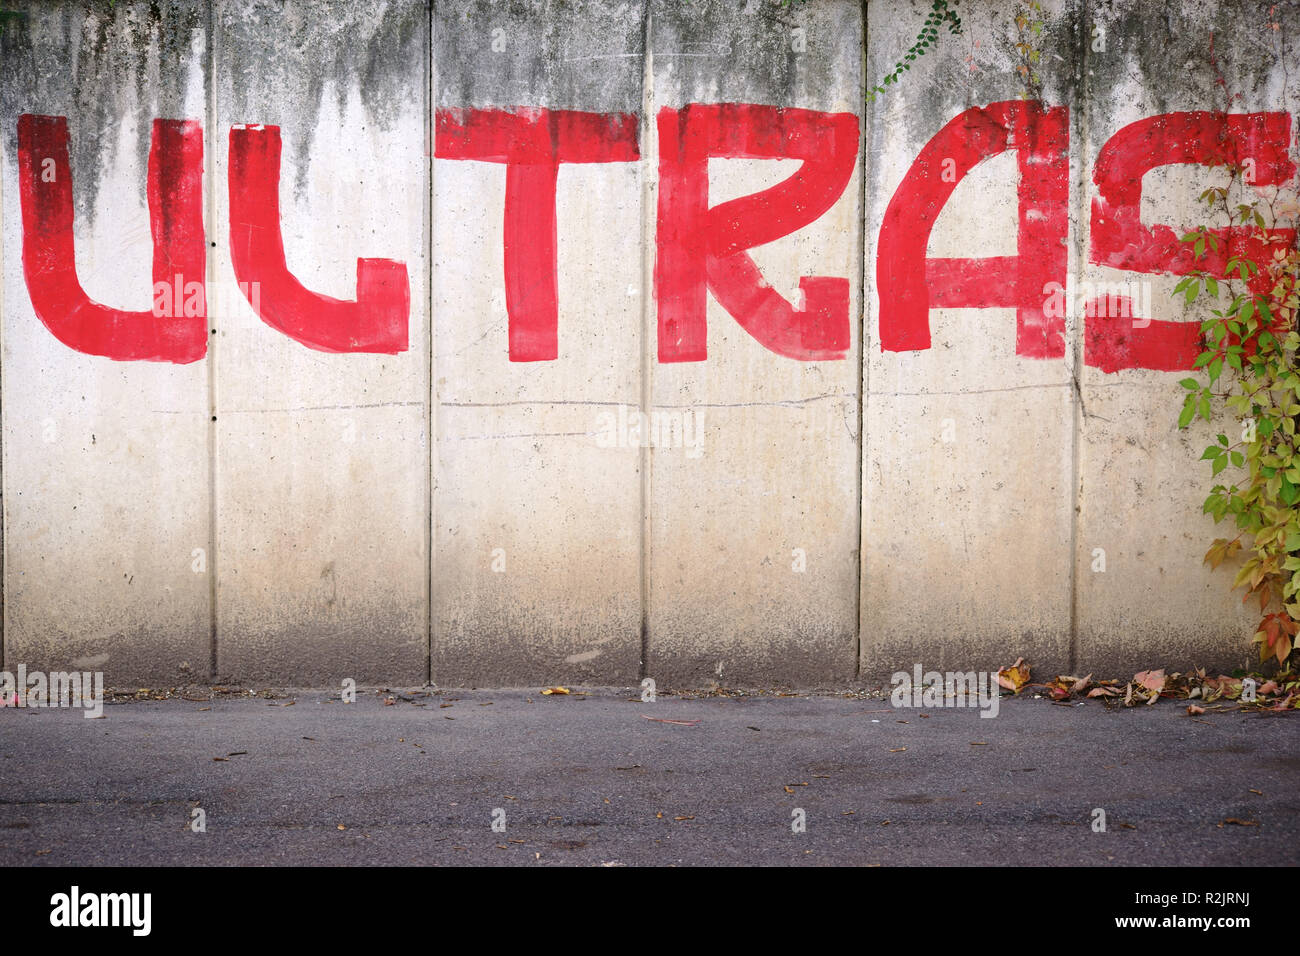 Word / Graffiti 'Ultras' for football fan on a concrete wall, - Stock Image